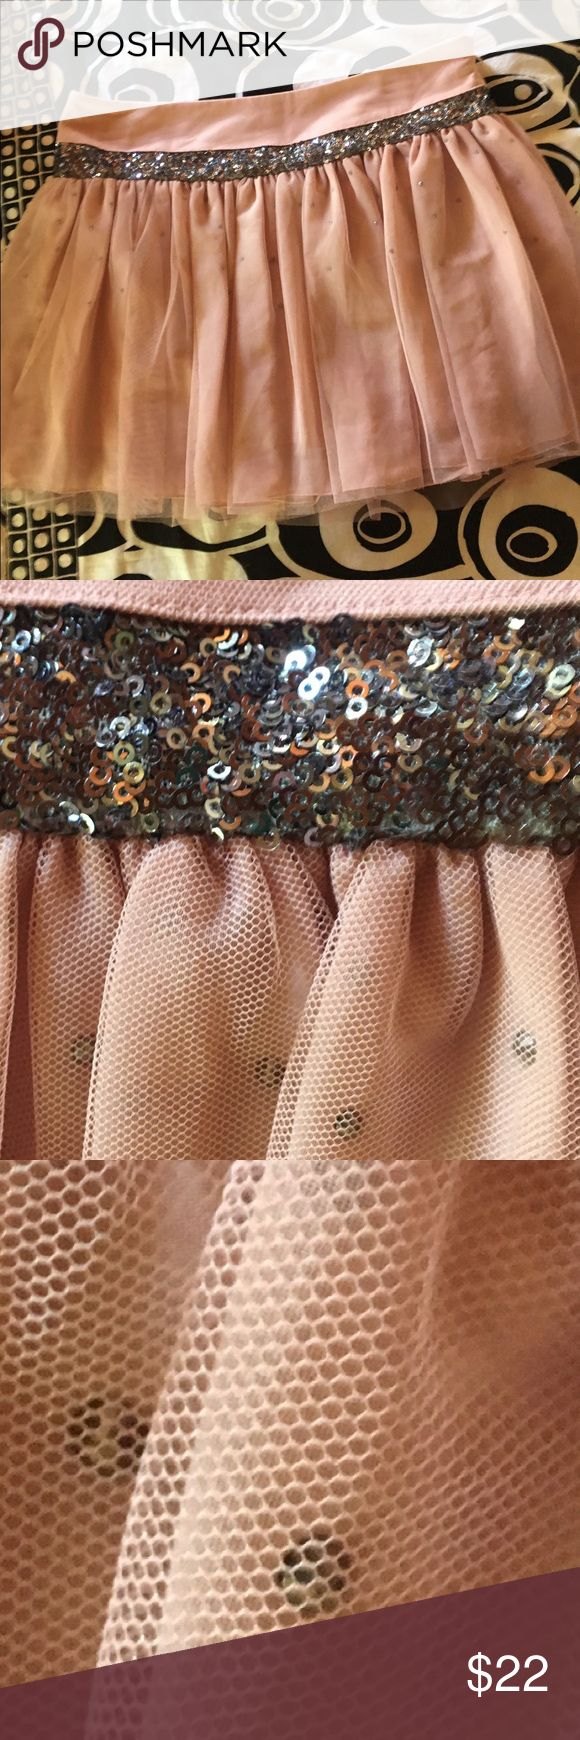 💗NEW VERA WANG PINK TULLE RHINESTONE MINI SKIRT💗 💗GORGEOUS AND BRAND NEW VERA WANG SILKY MINI WITH RHINESTONES WITH TULLE OVERLAY AND SEQUIN TRIM BAND~EXQUISITE & LOVELY💗 Vera Wang Skirts Mini